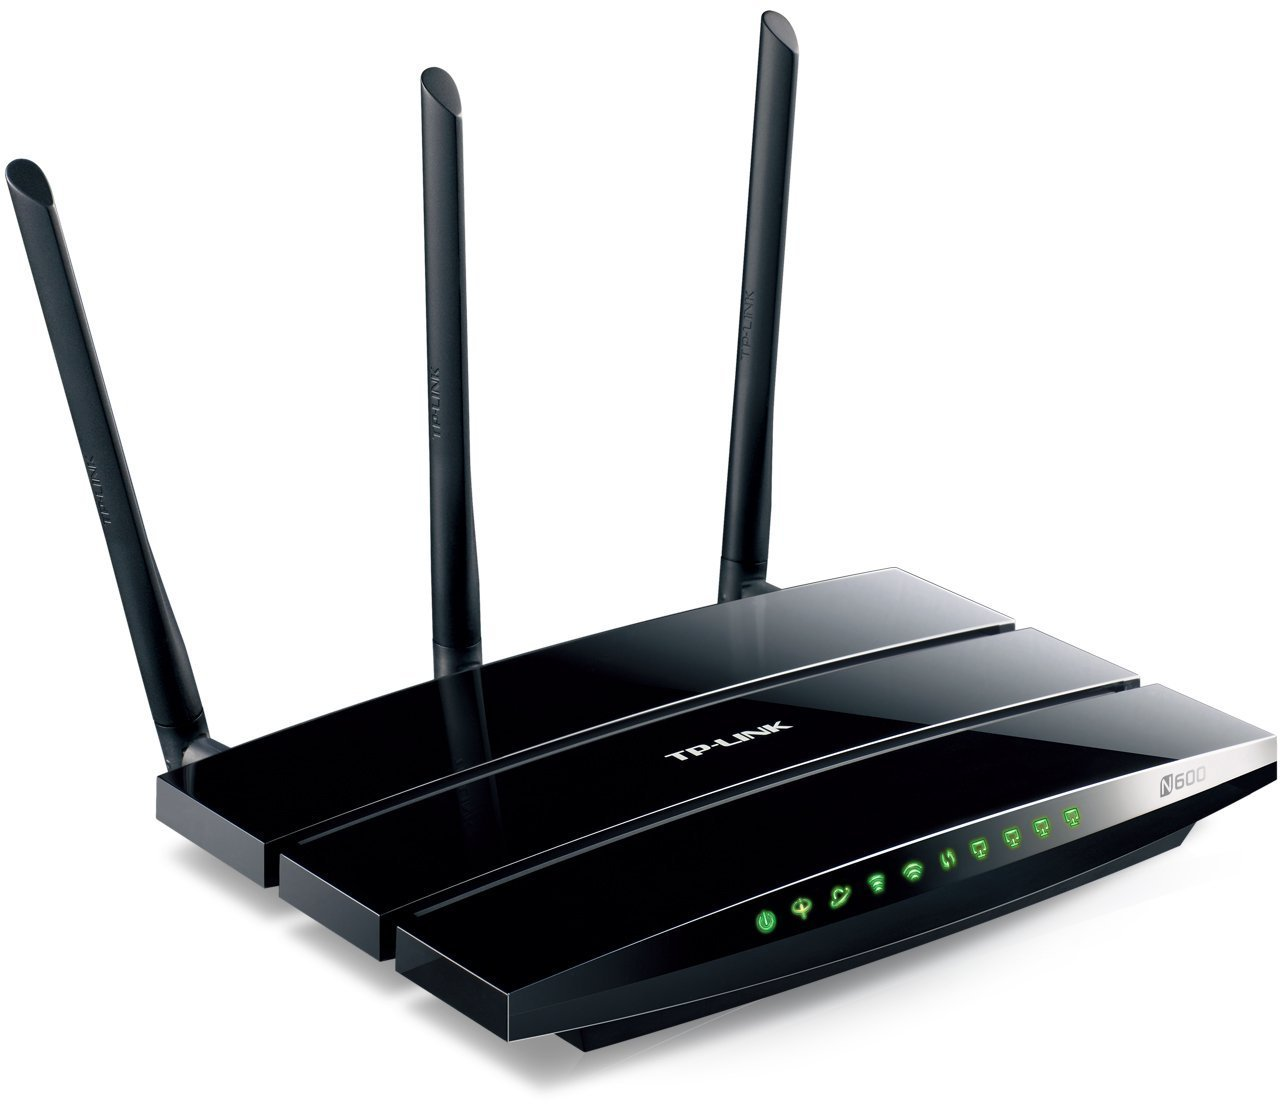 N600 Wireless Dual Band Gigabit Vdsl2 Adsl2 Modem Centuy Link Wiring Diagram Router Computers Accessories